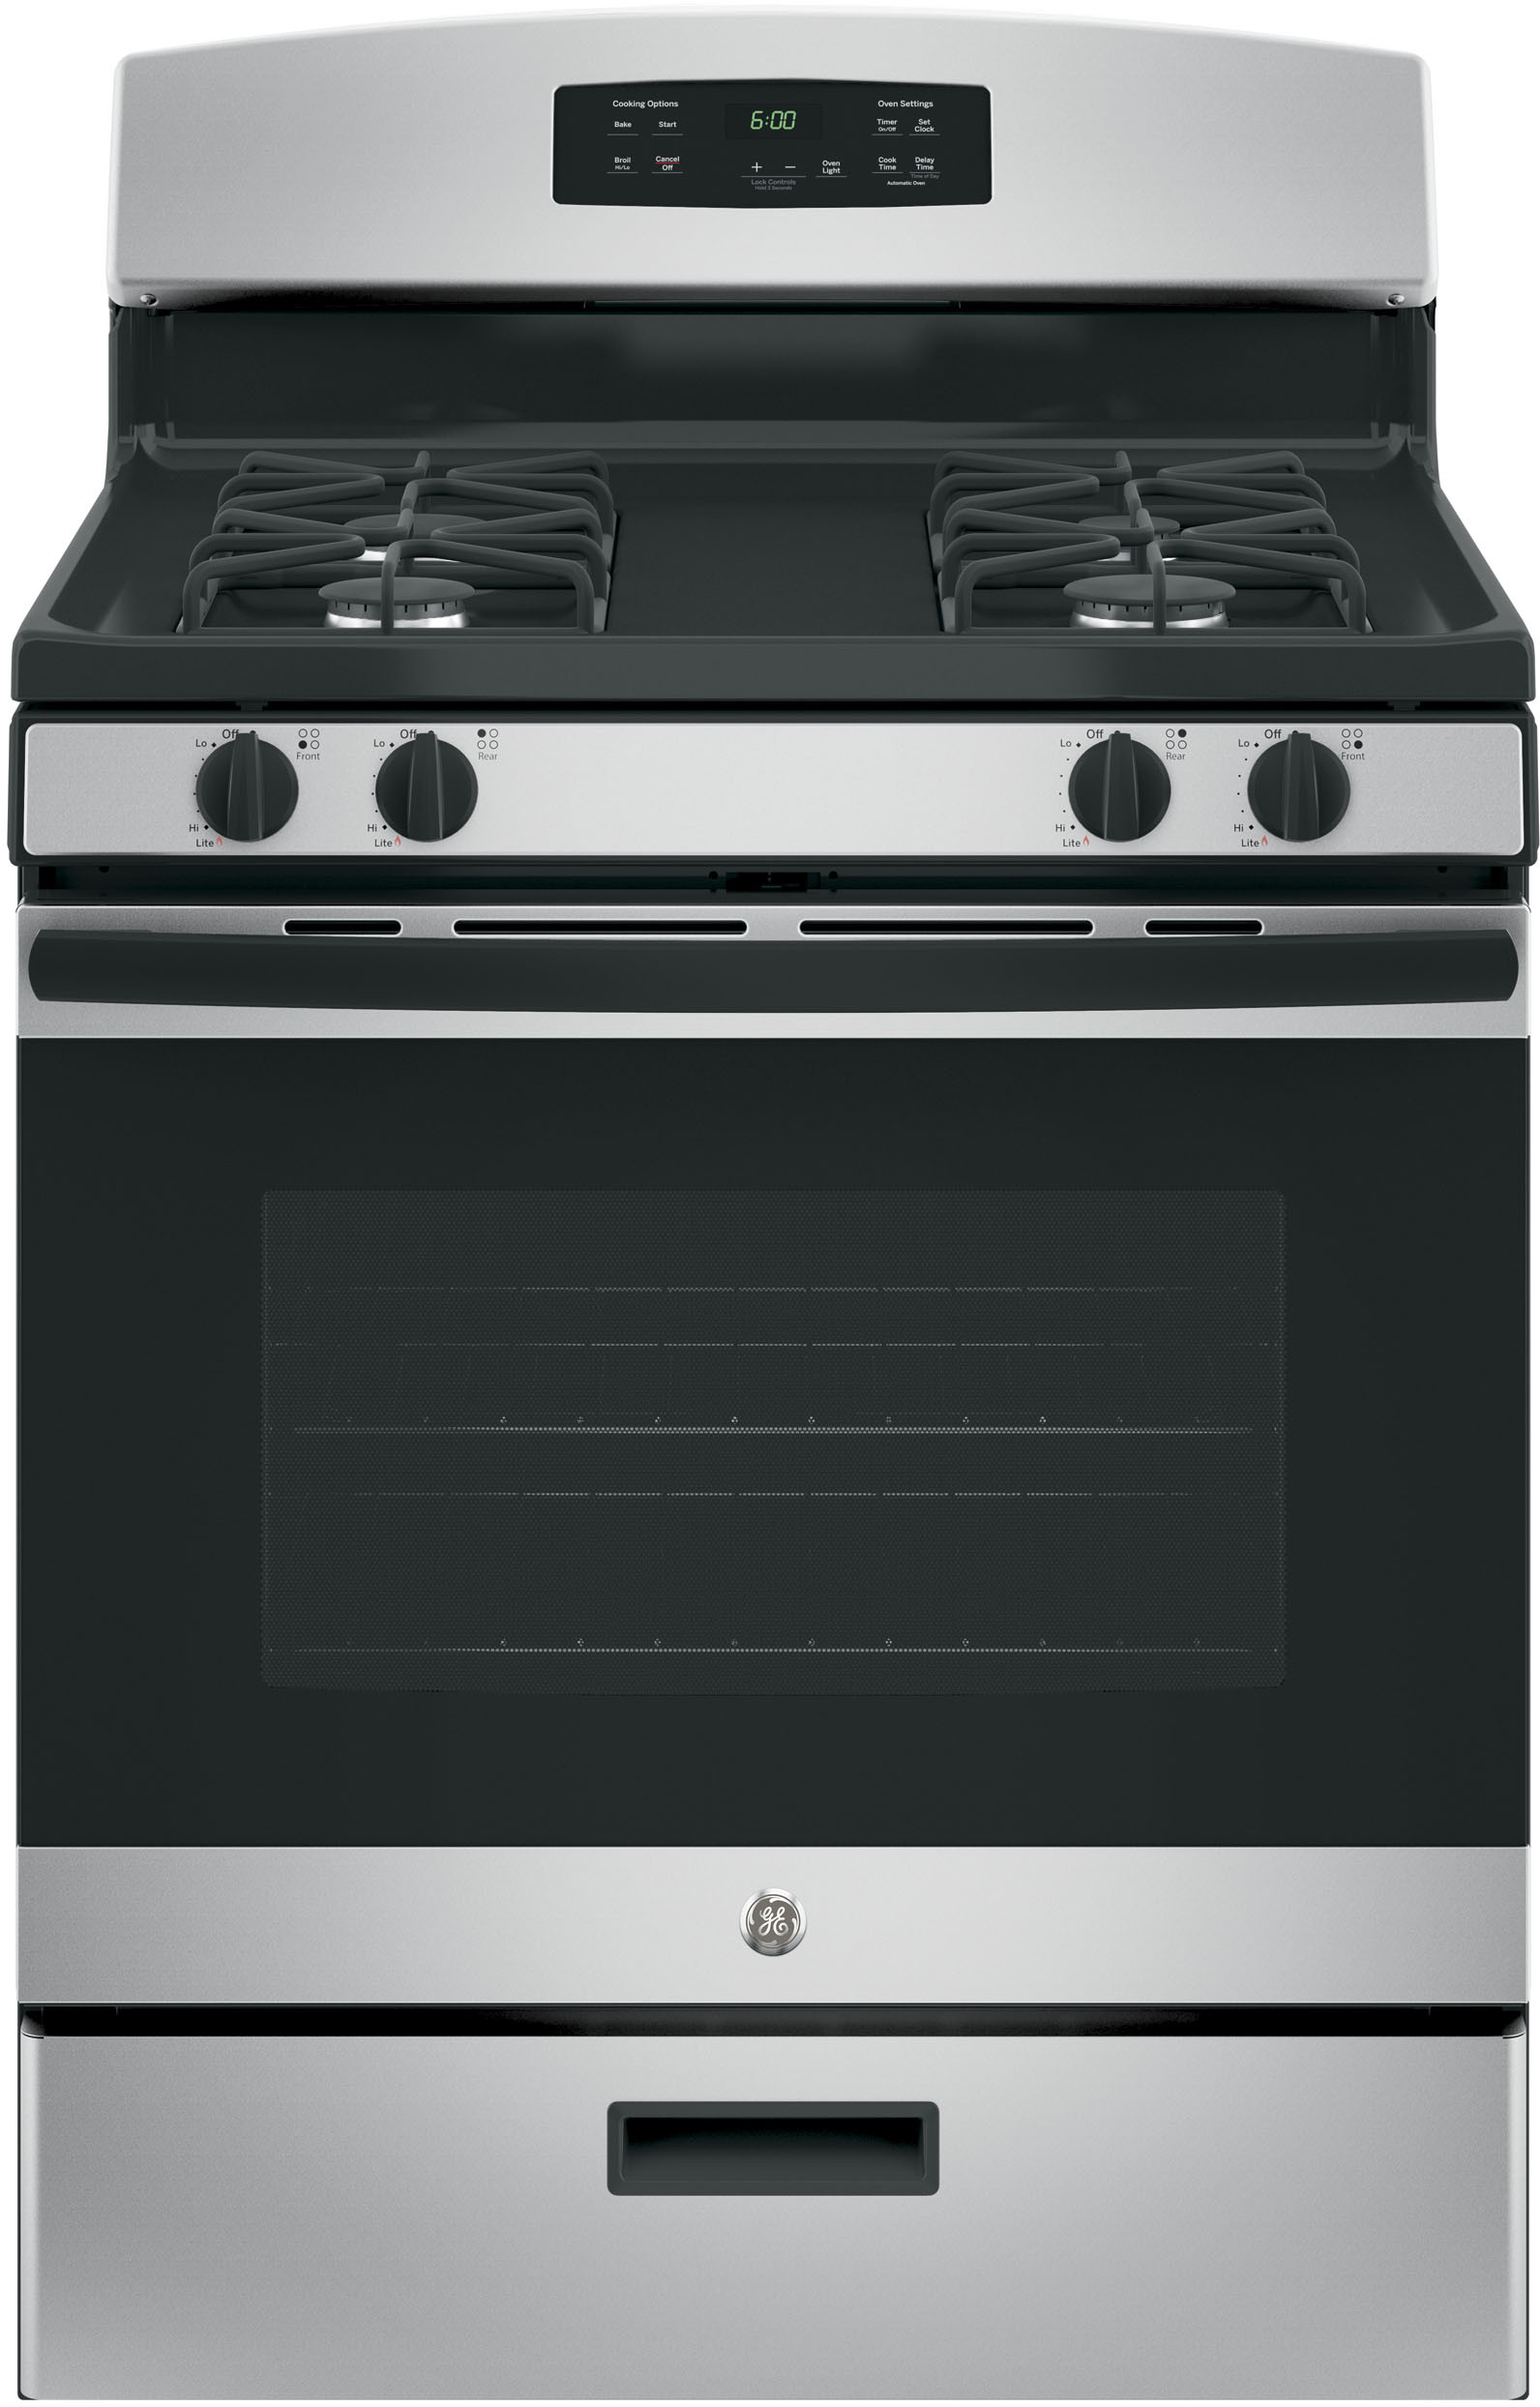 Ge Jgbs60geksa 30 Inch Freestanding Gas Range With Precise Simmer Burner Broiler Drawer 4 8 Cu Ft Capacity Sealed Burners And Star K